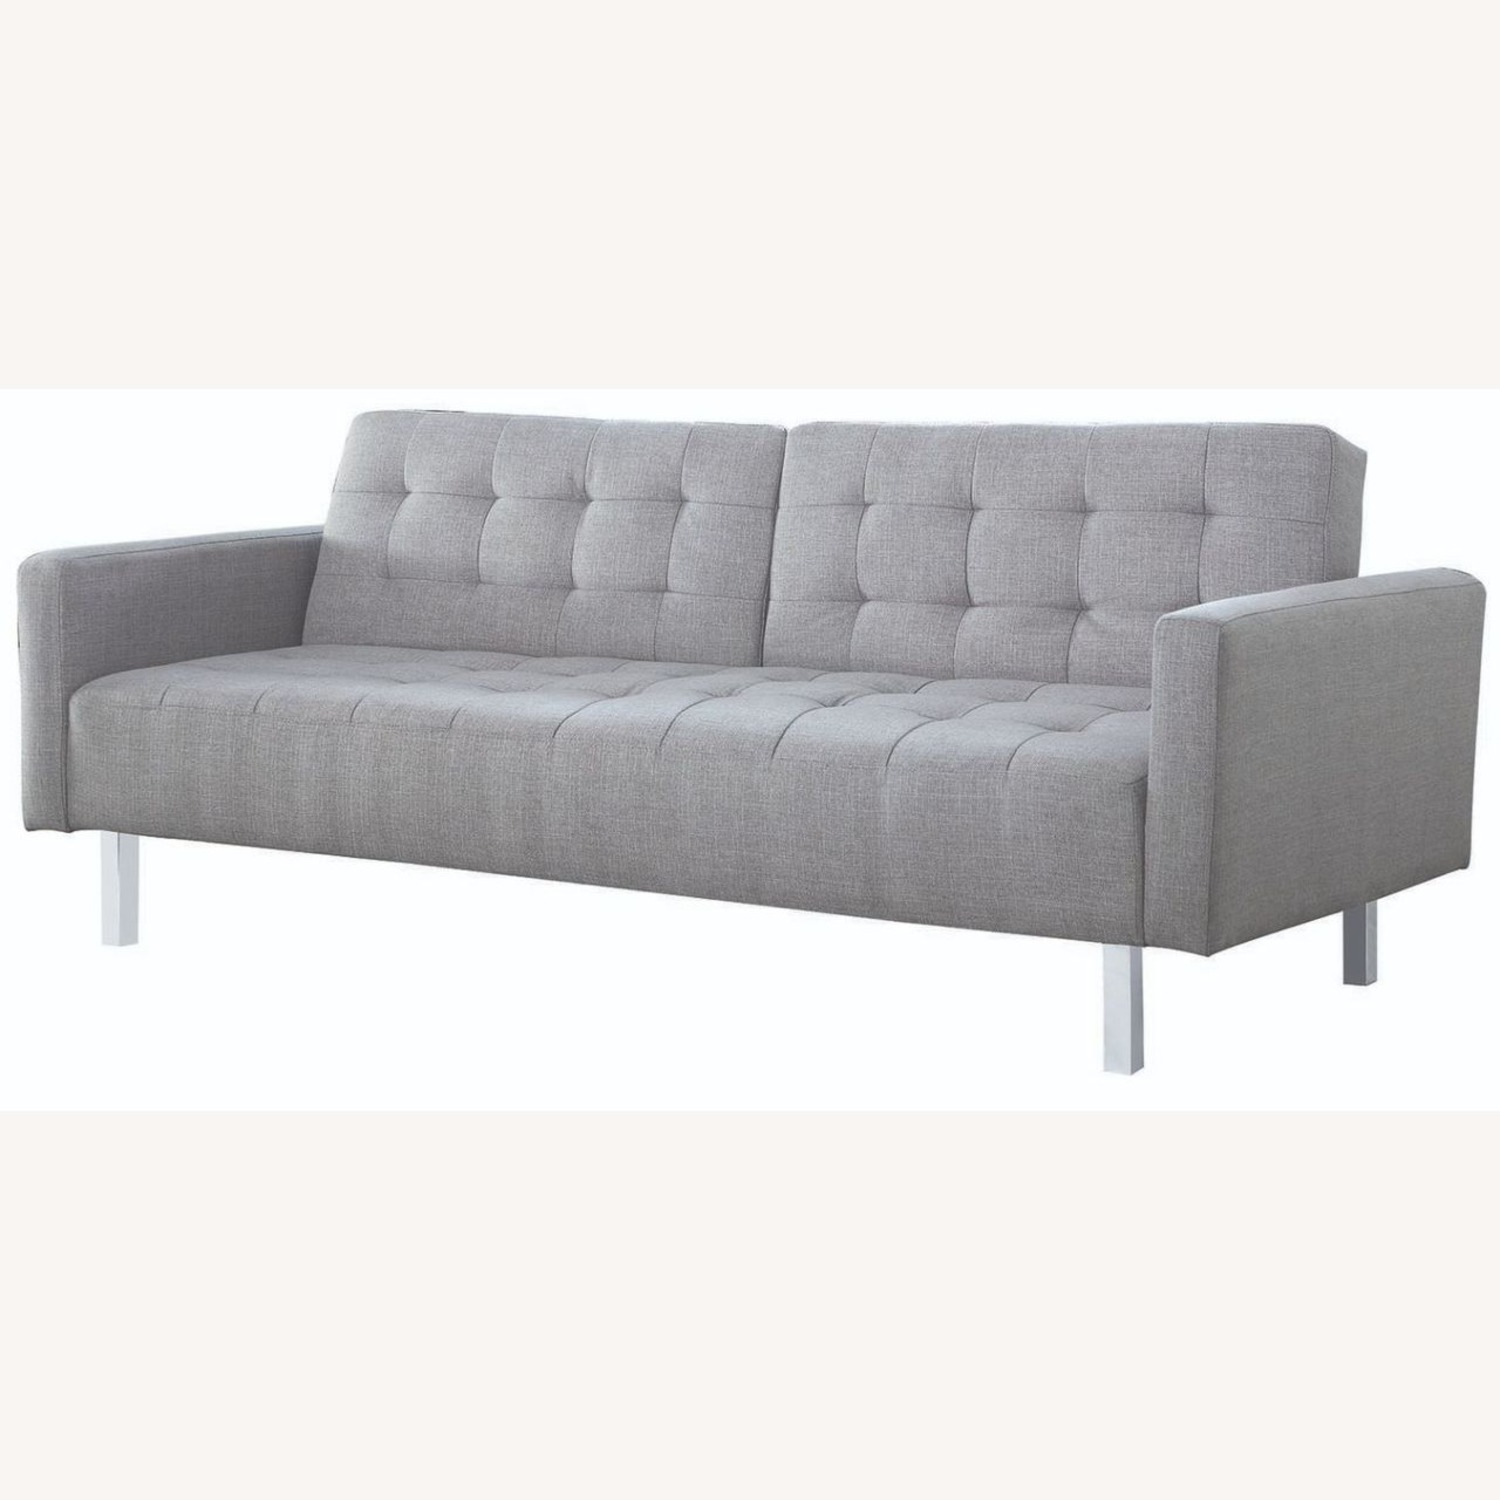 Modern Button Tufted Sofa Bed In Light Grey Fabric - image-0